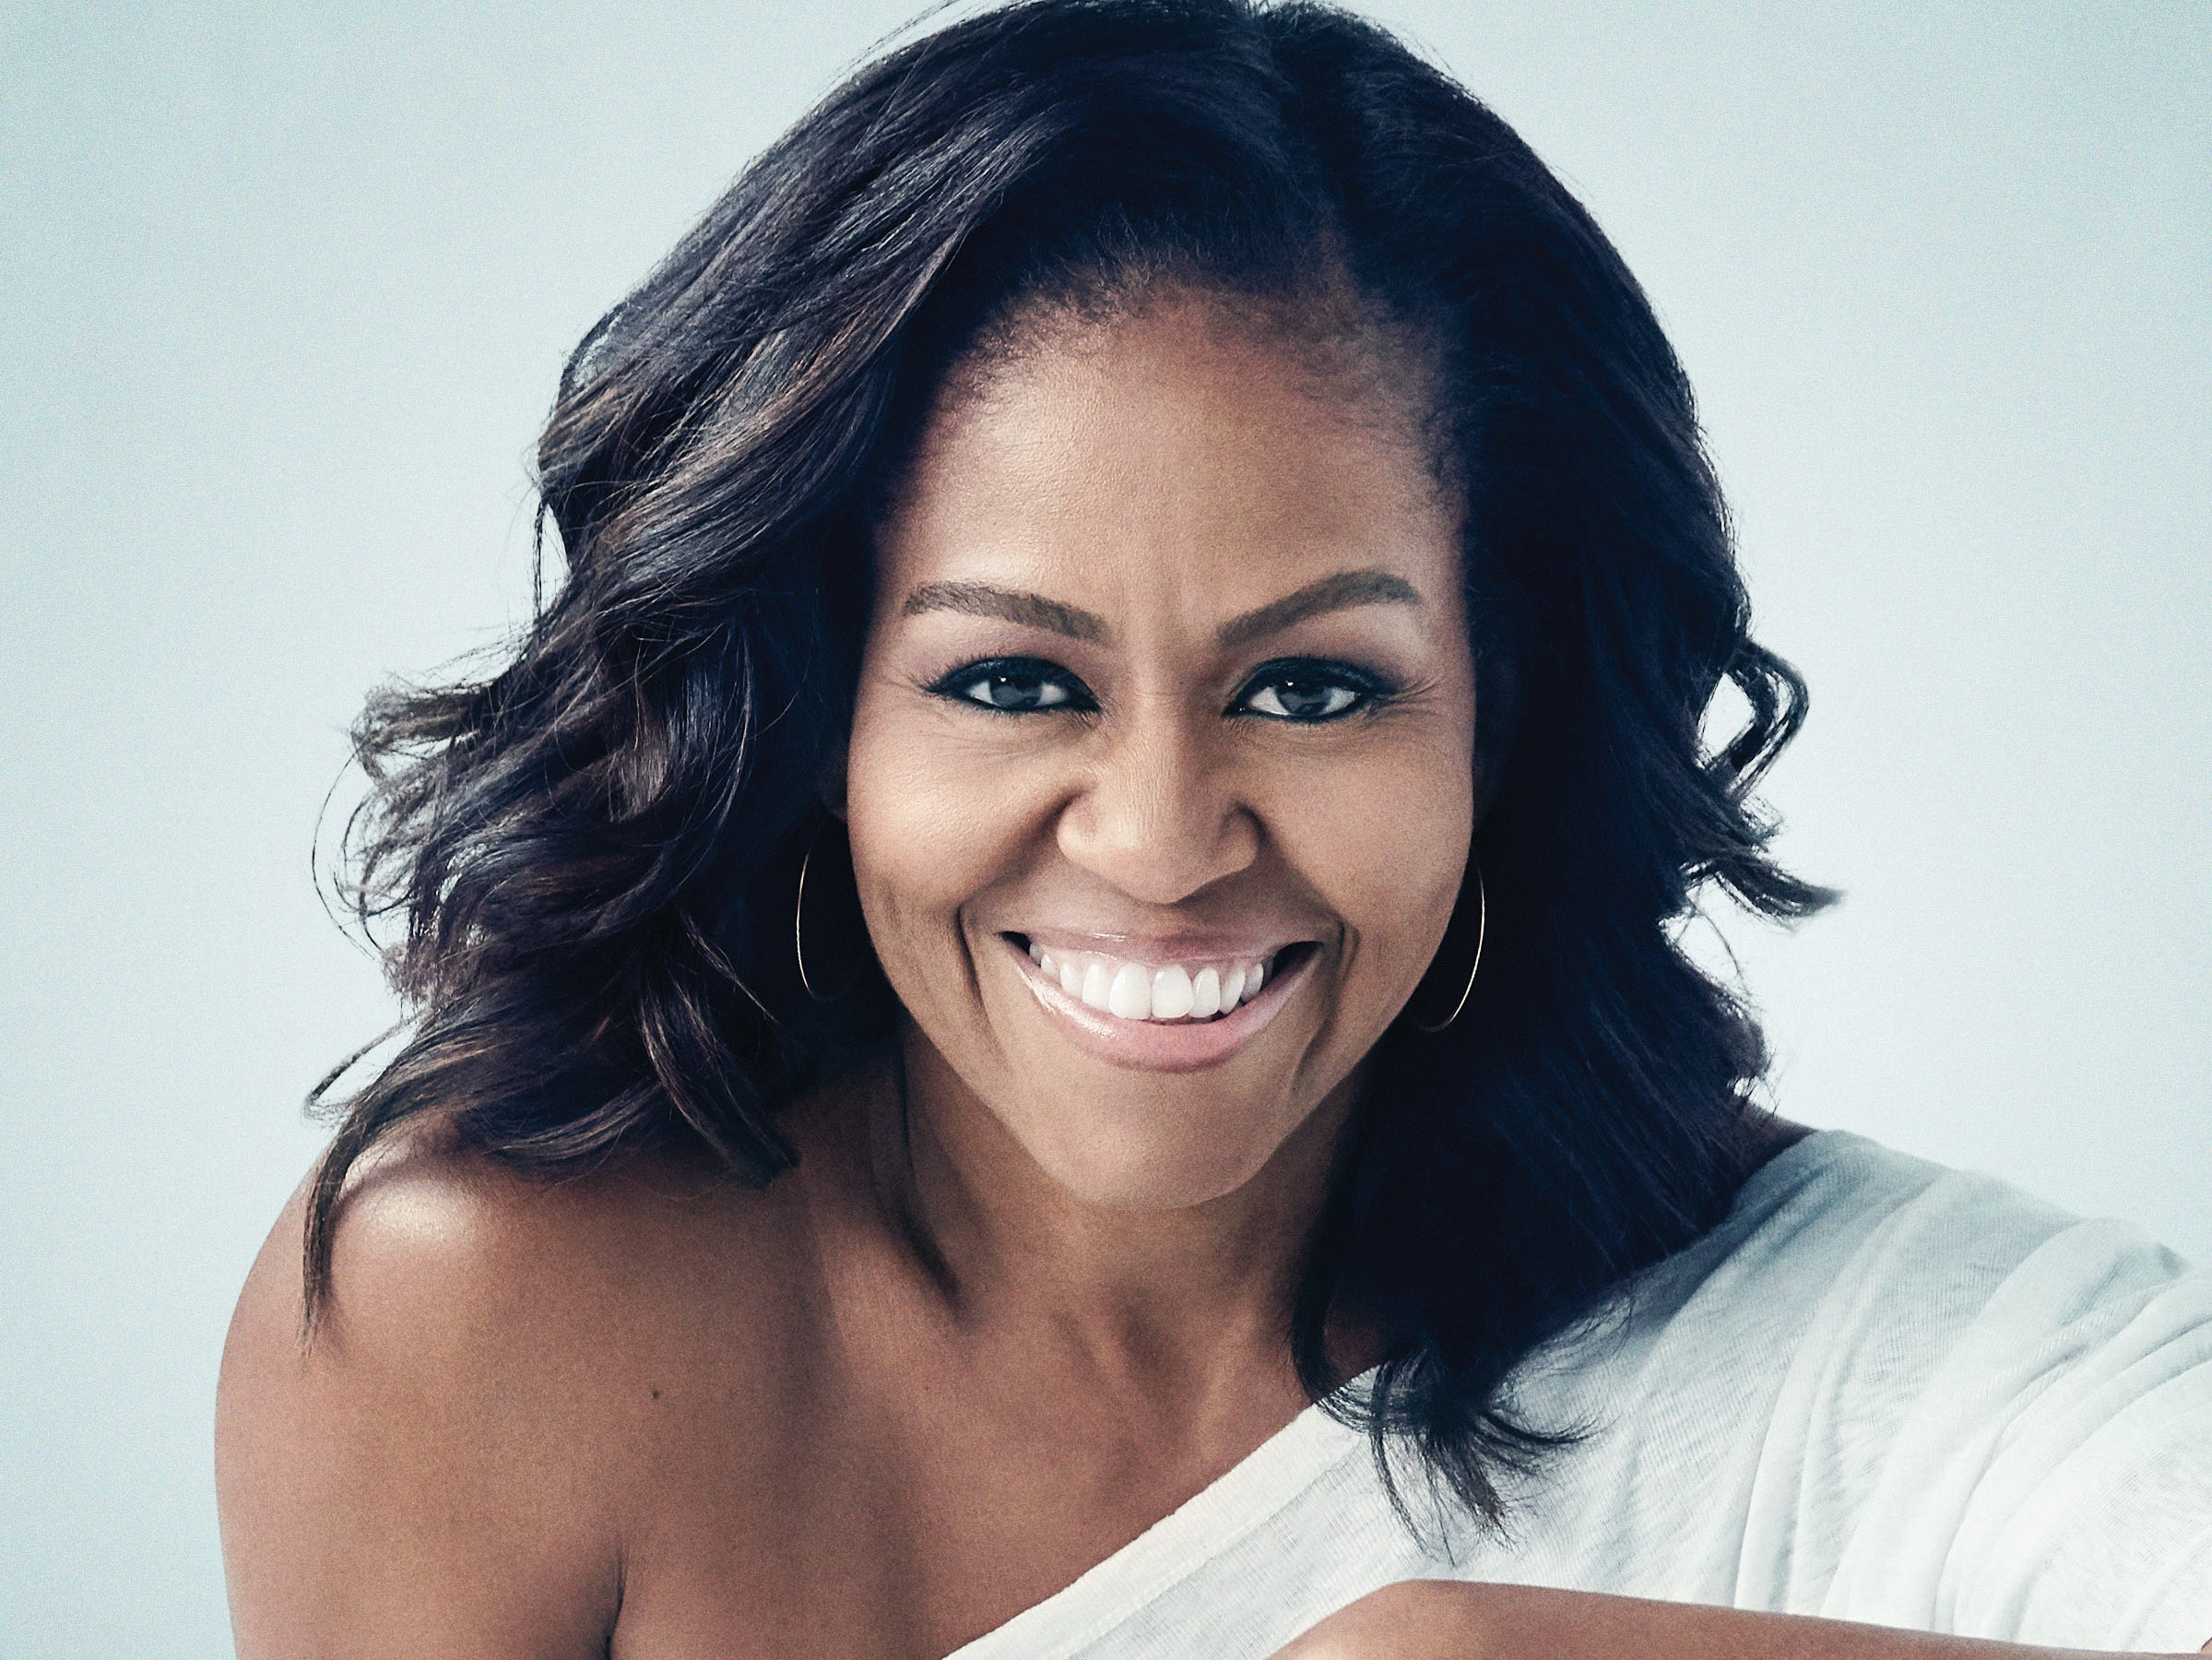 Michelle Obama will visit Milwaukee March 14 on her book tour.